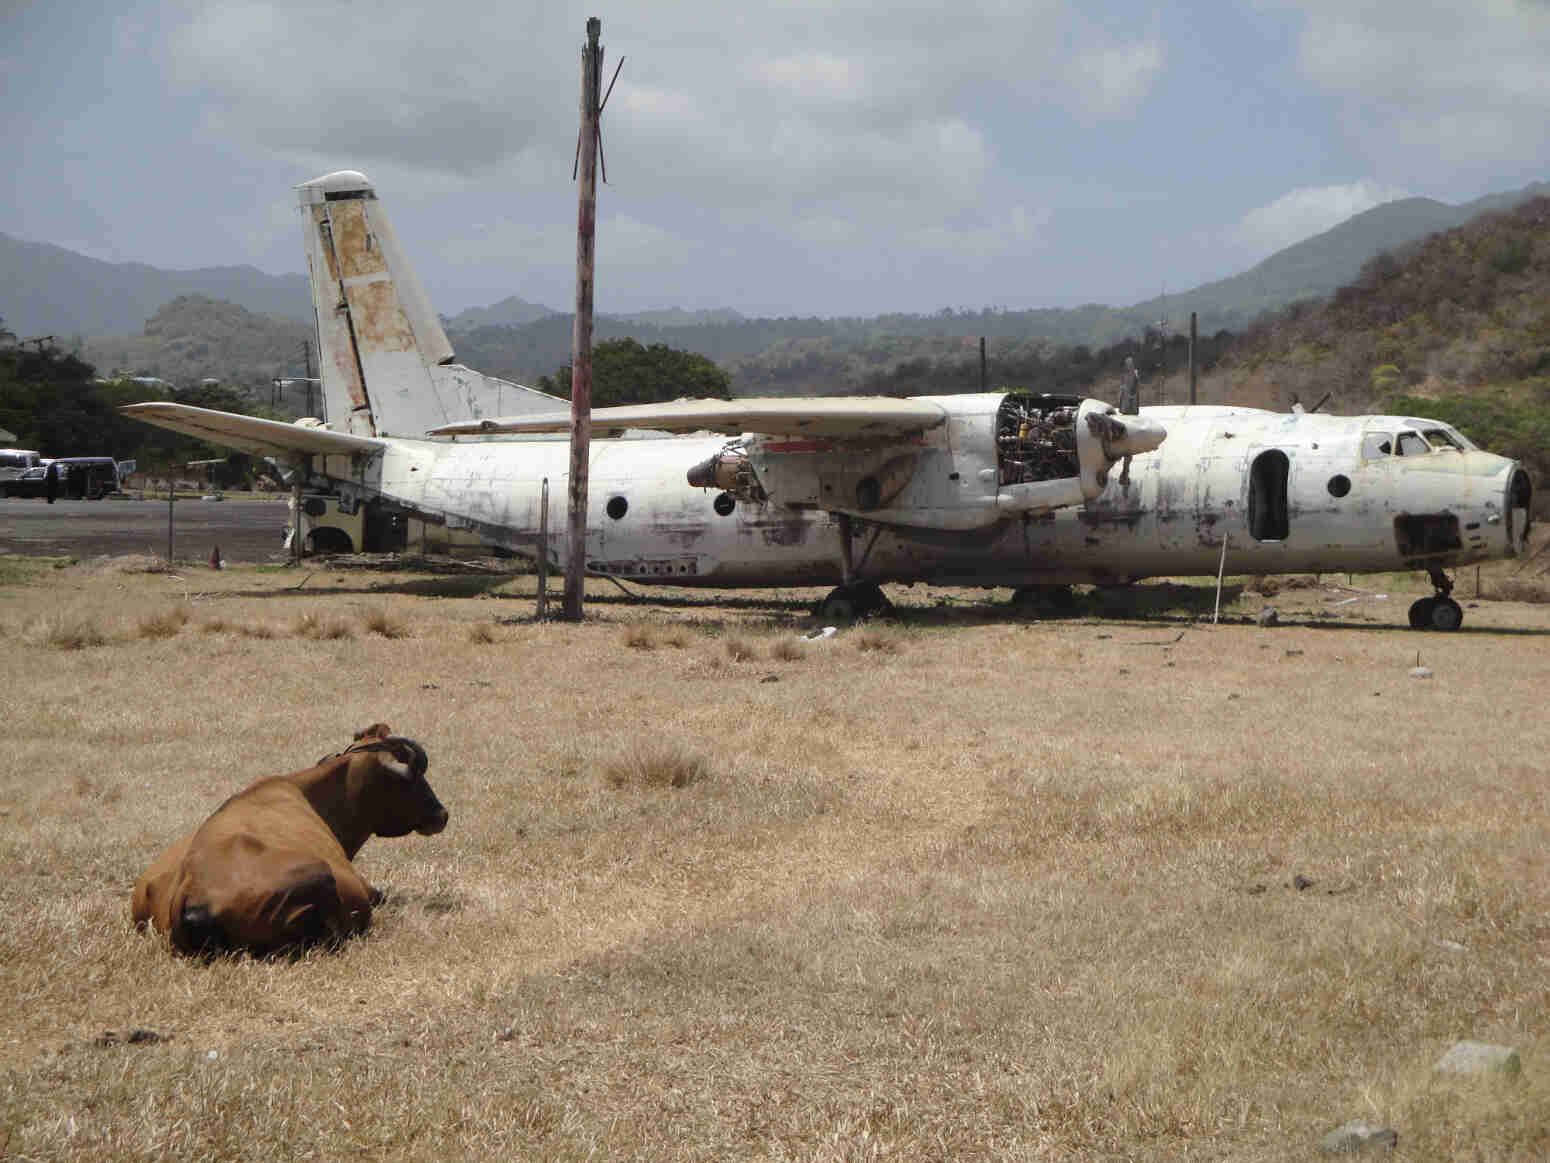 Derelict-plane-at-Grenada-s-abandoned-Pearls-Airport